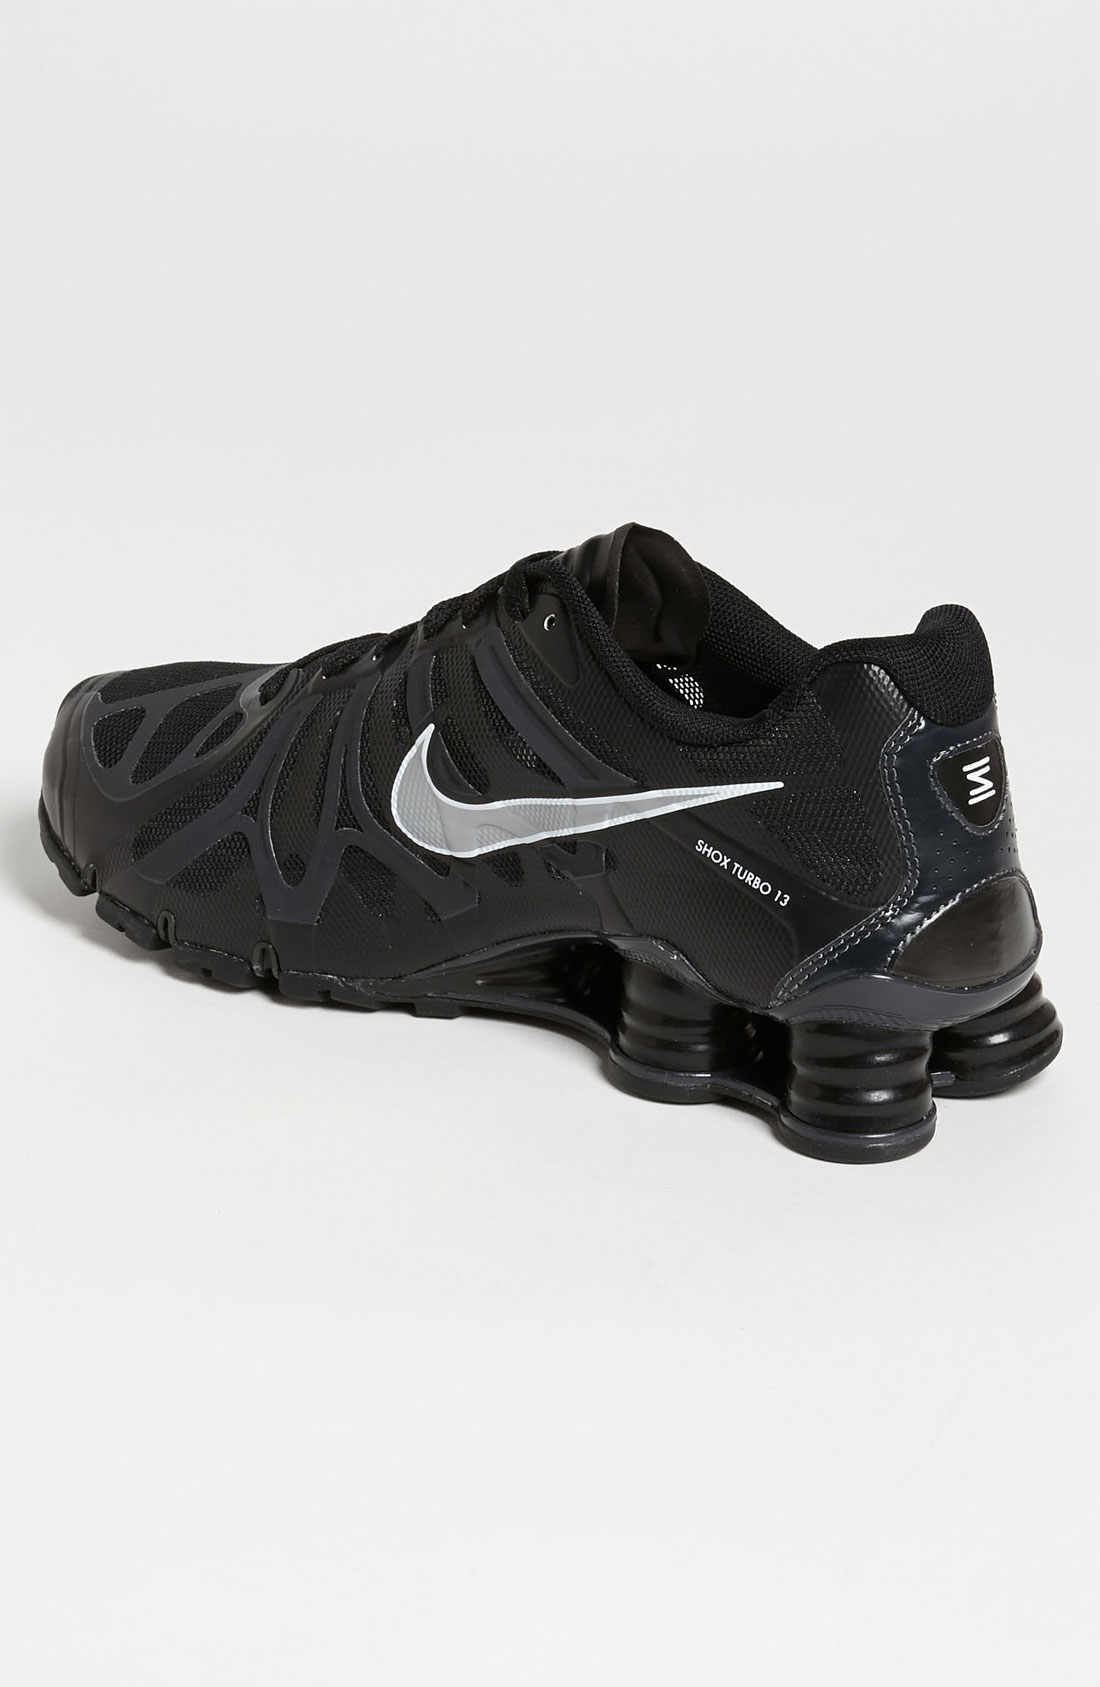 Nike Shox Turbo 13 Black Silver